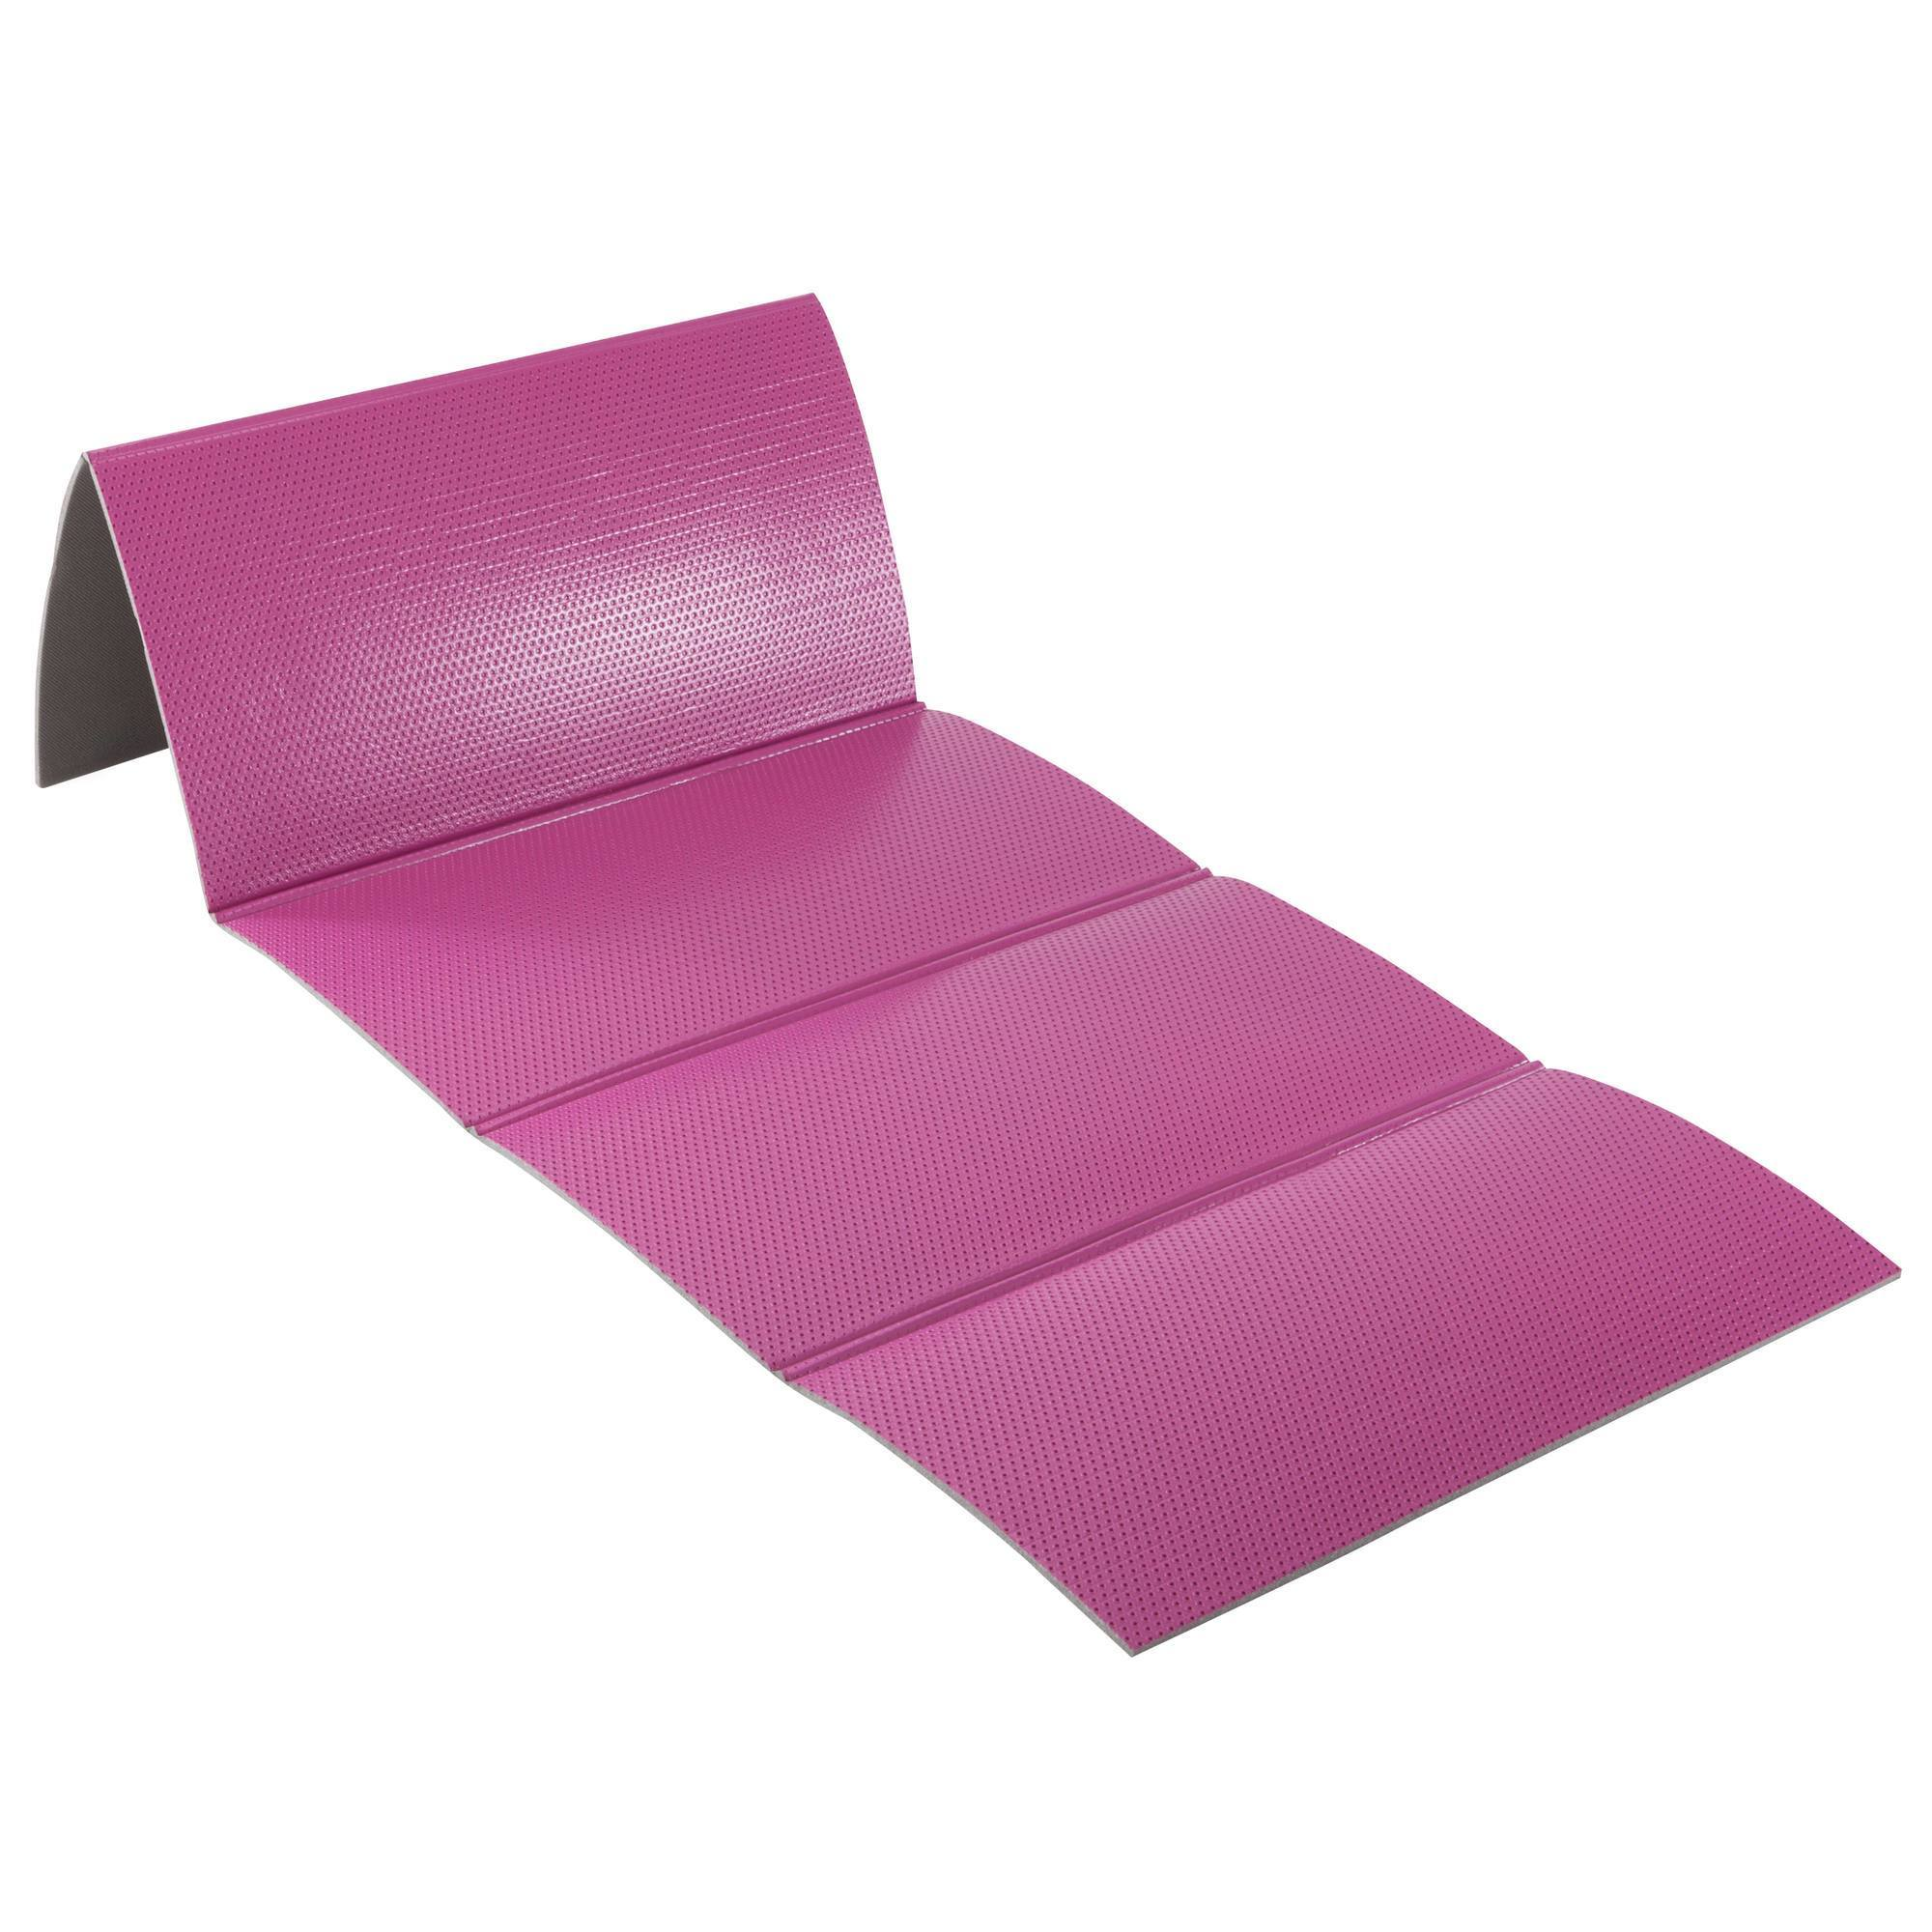 TAPIS SOL 500 RESISTANT CHAUSSURES & PLIABLES PILATES TONING TAILLE M 8mm ROSE